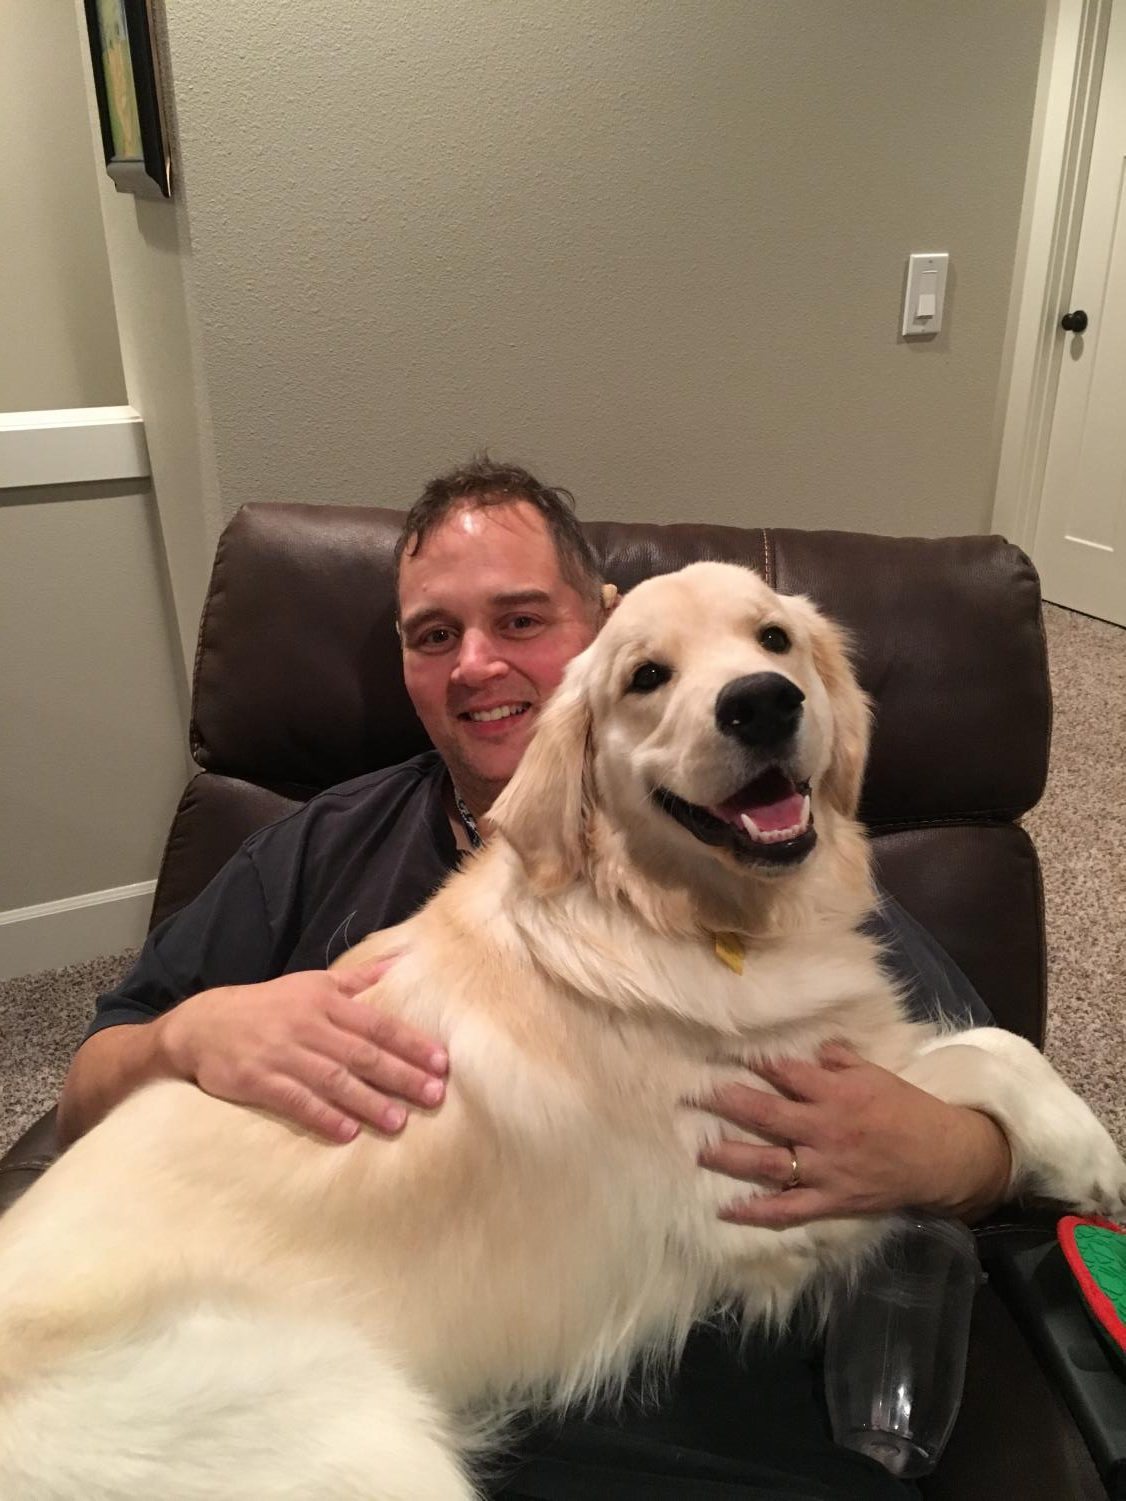 Teacher Rob Havrilla thinks his puppy, Timber, is a lap dog! Timber is the offspring of teacher and coach Justin Rosenblad's dogs. Rosenblad passed last spring after a long battle with cancer.